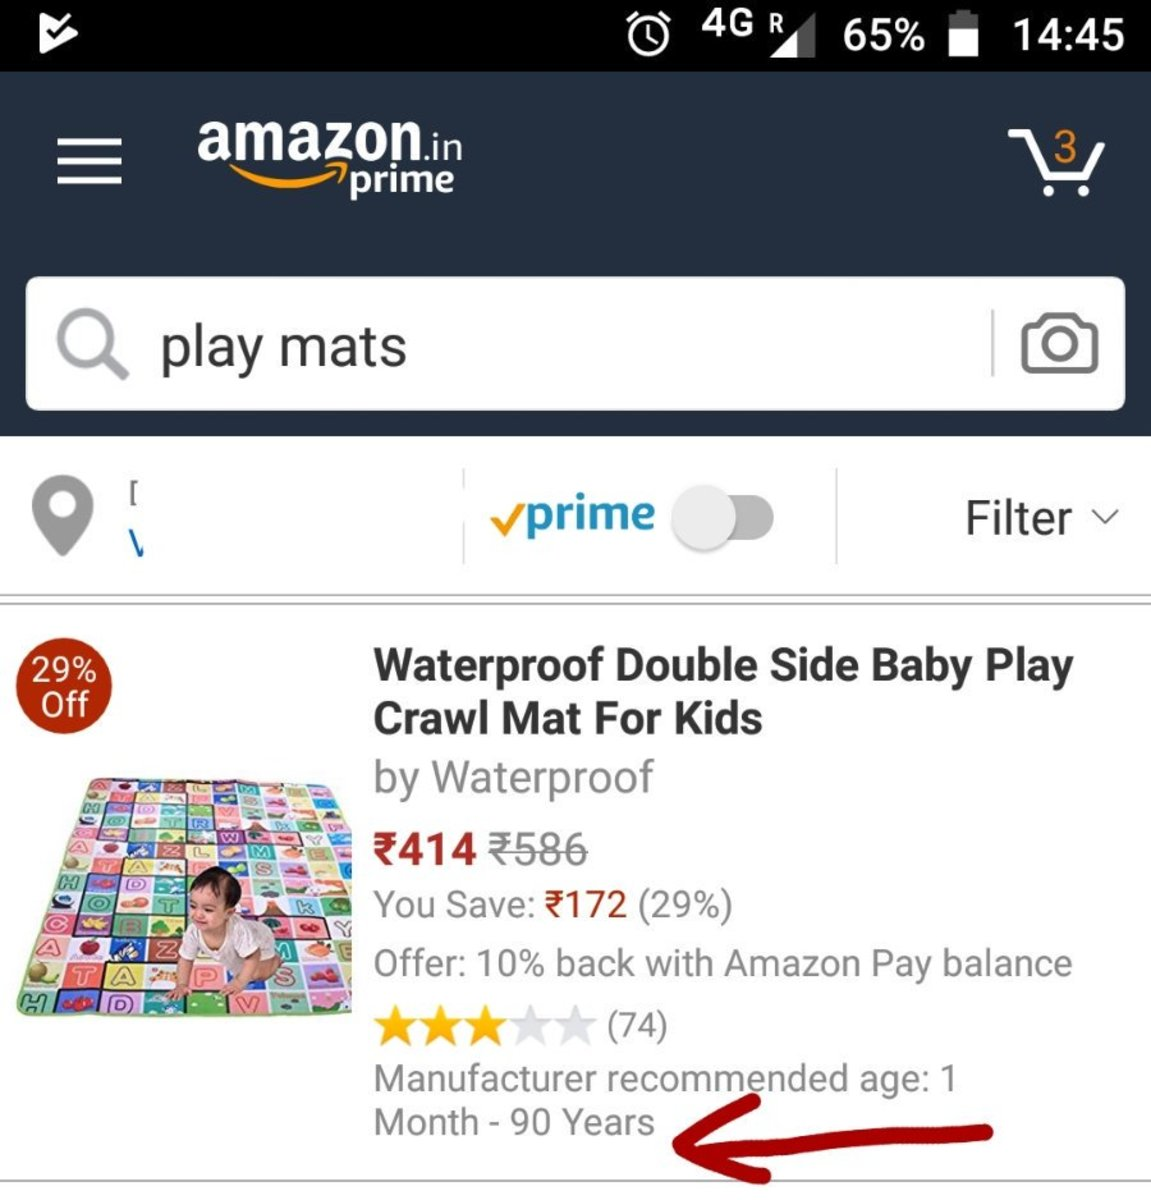 how-amazon-made-me-smile-while-i-browsed